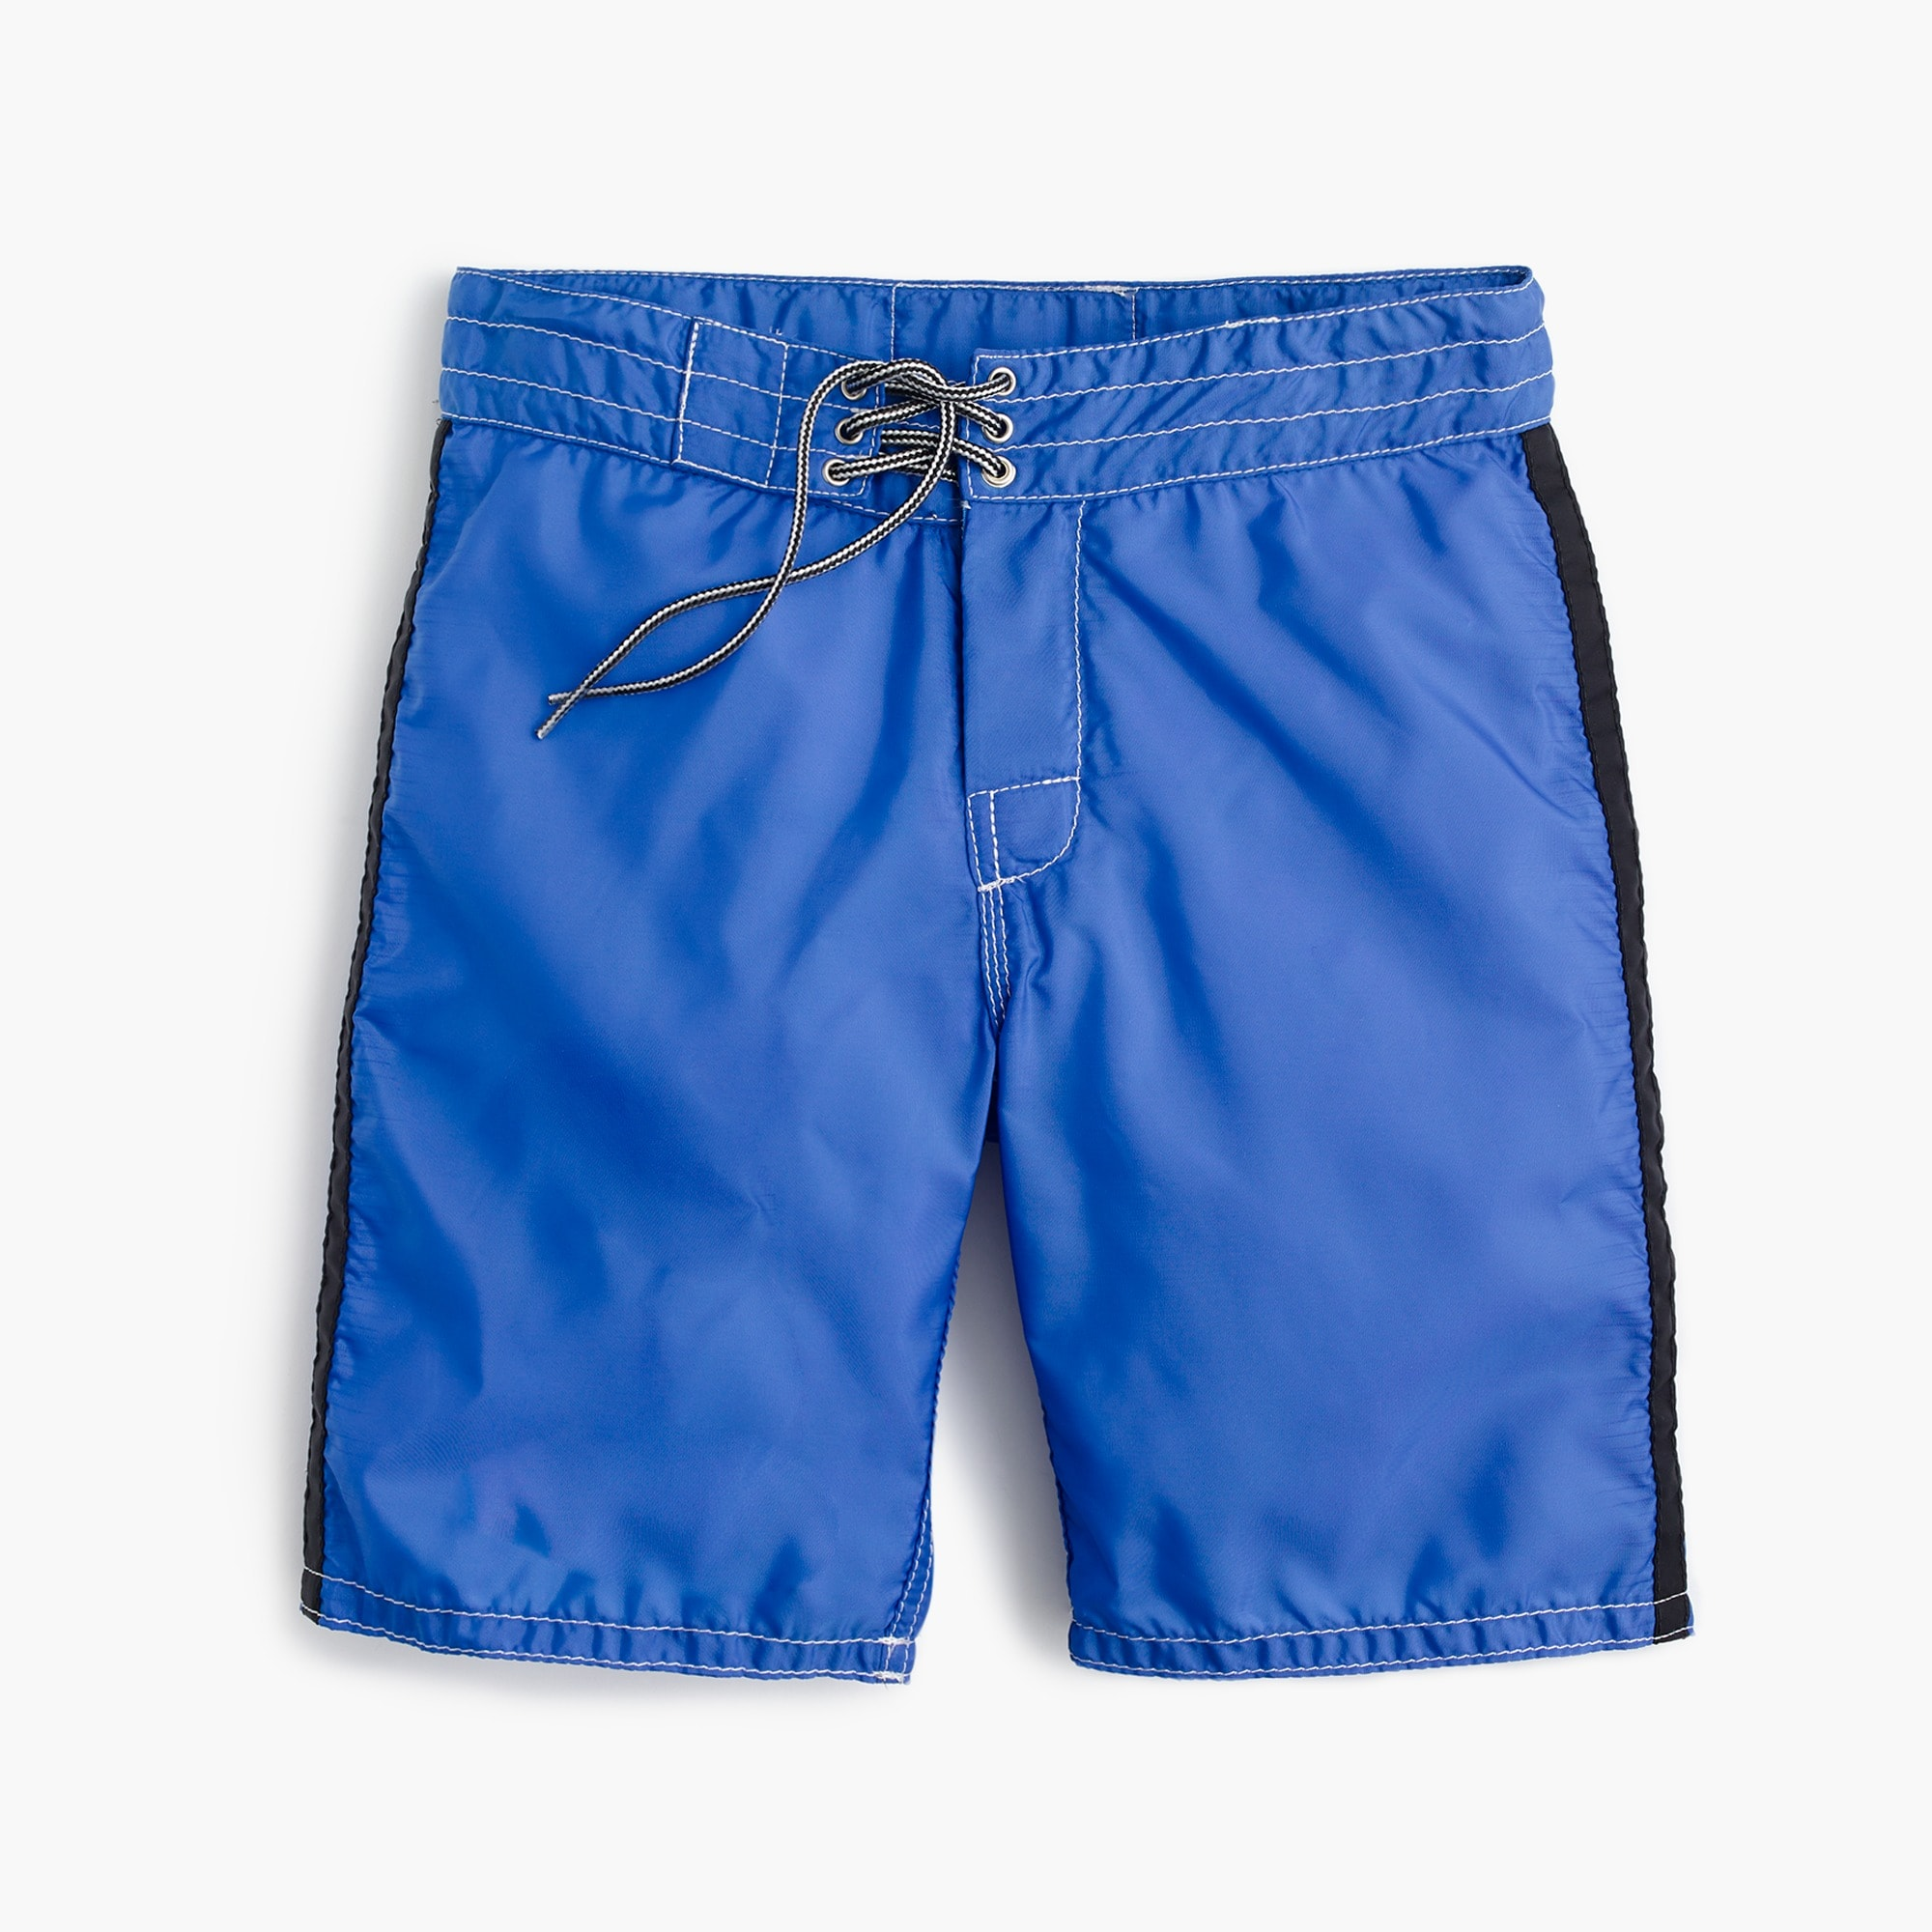 Boys' Birdwell® for crewcuts side-stripe board short